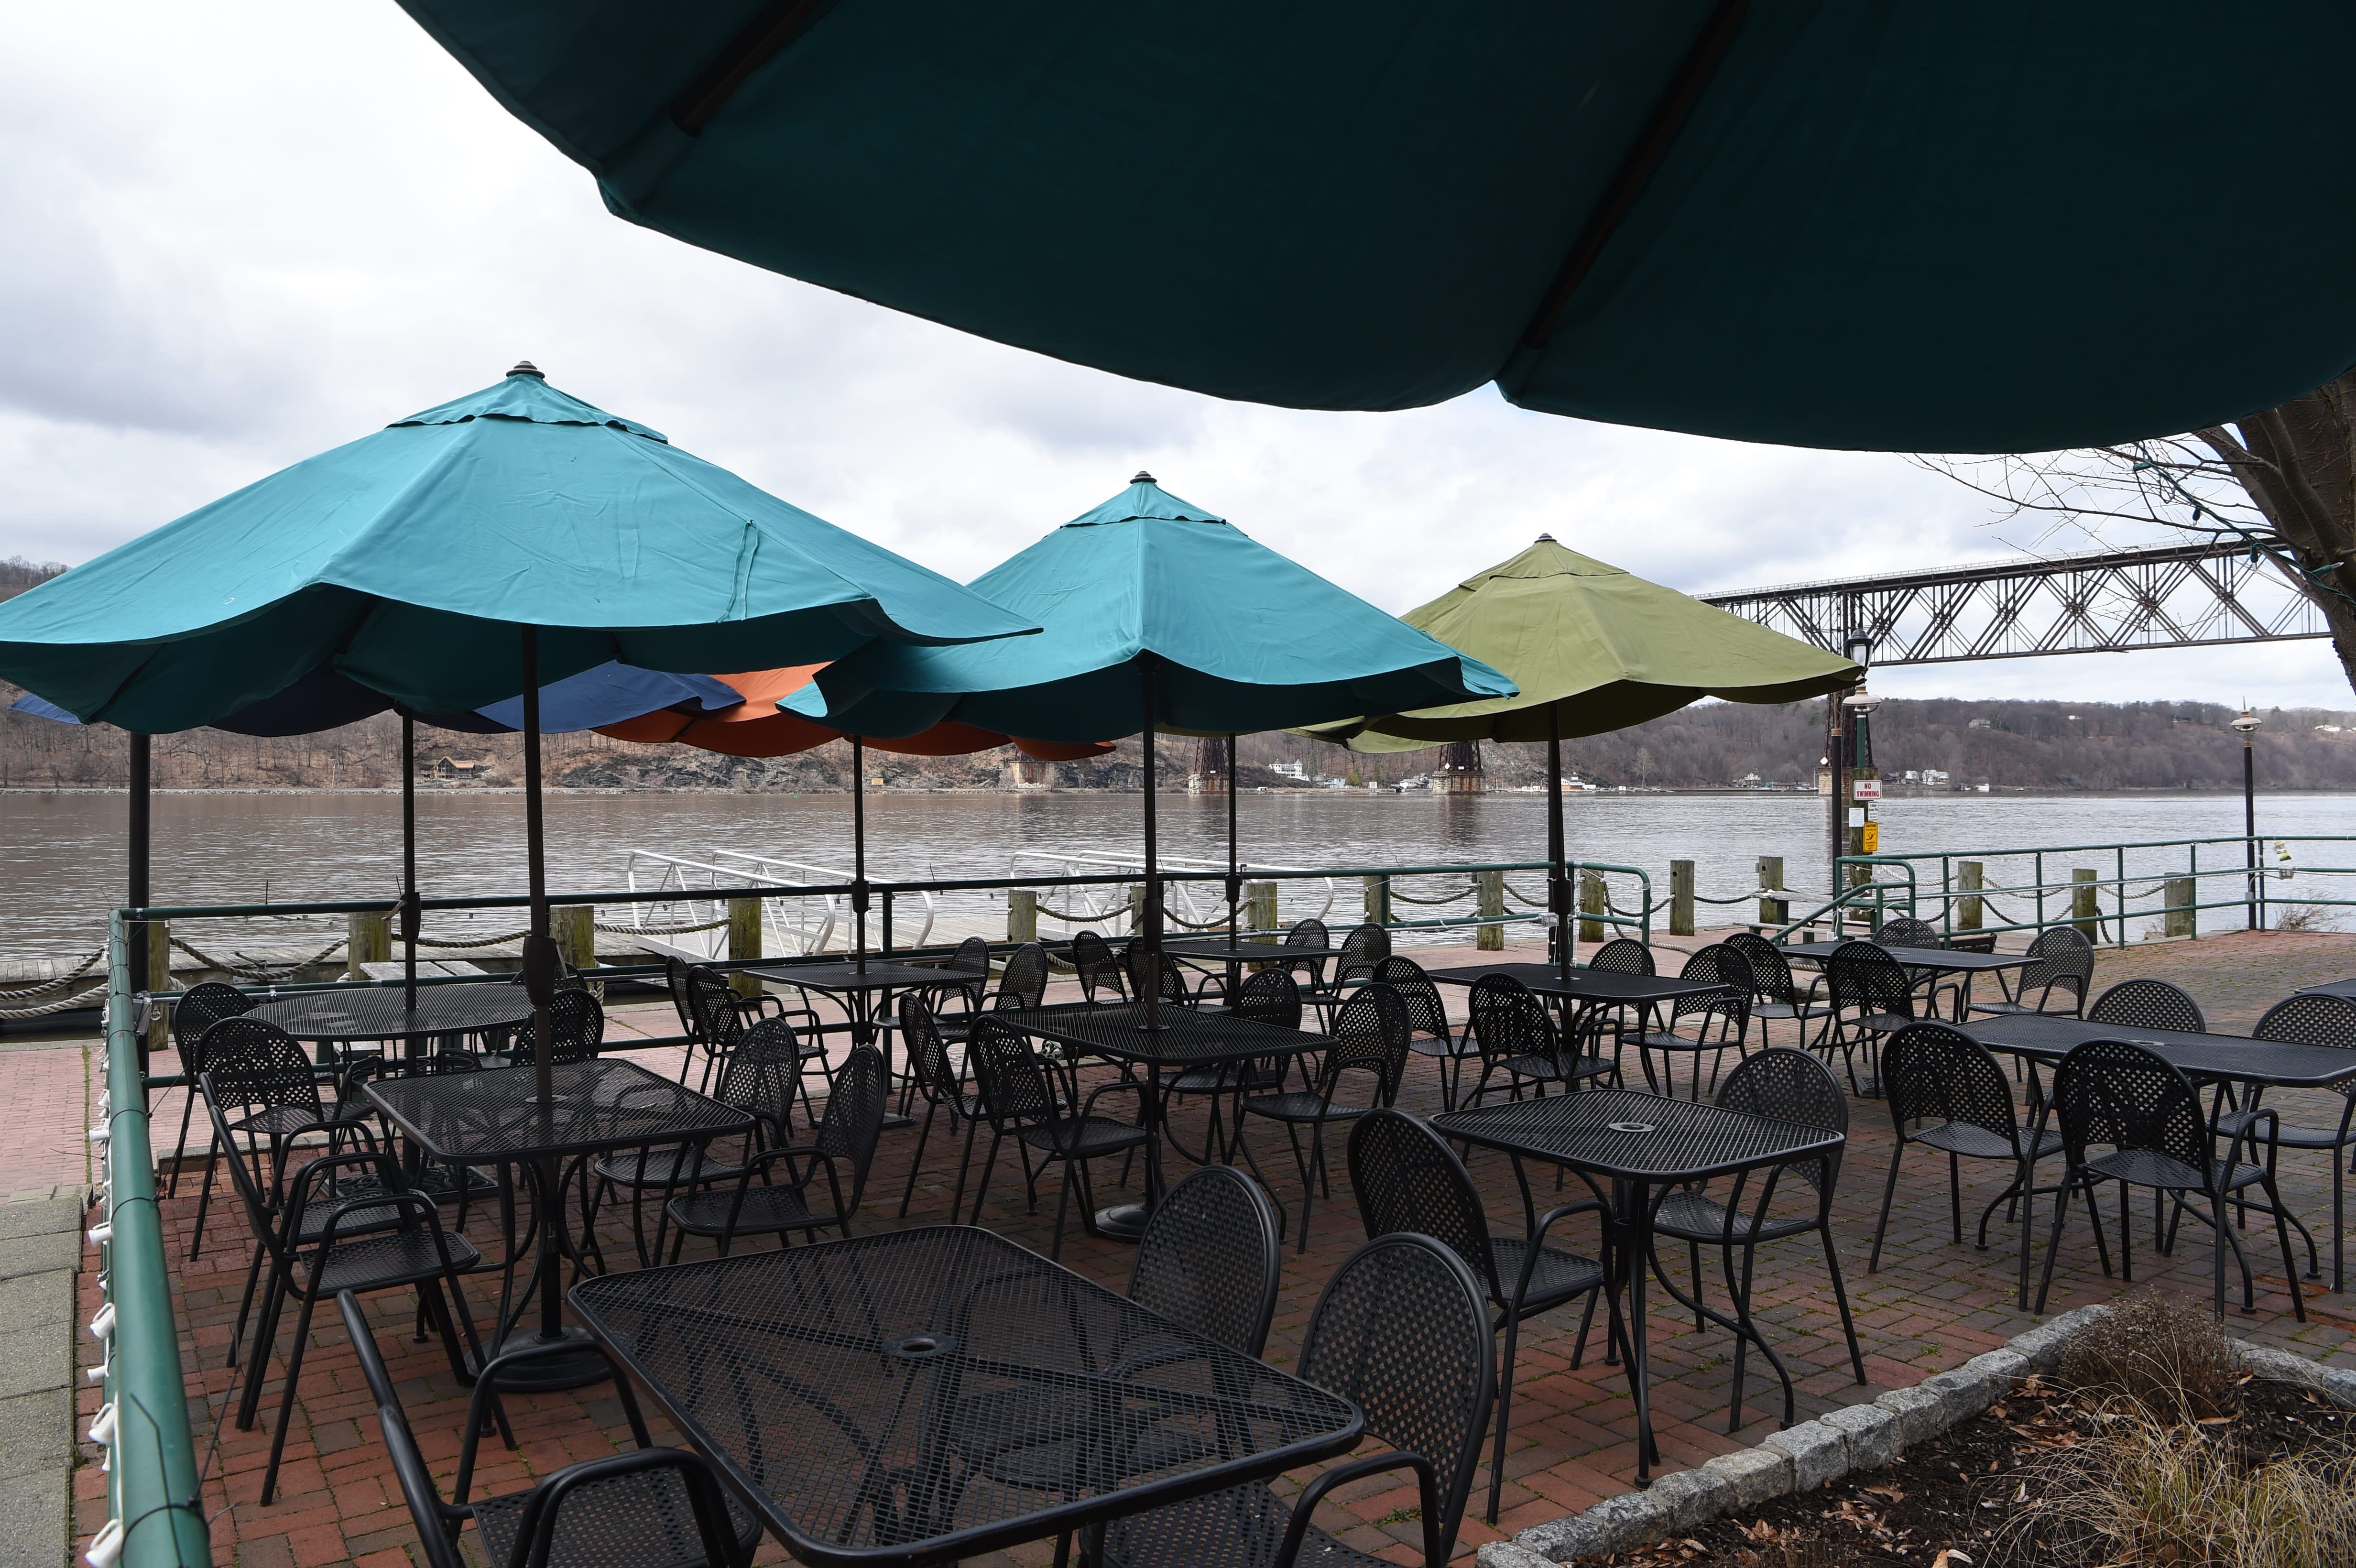 & From patios to the riverfront enjoy outdoor dining in Dutchess